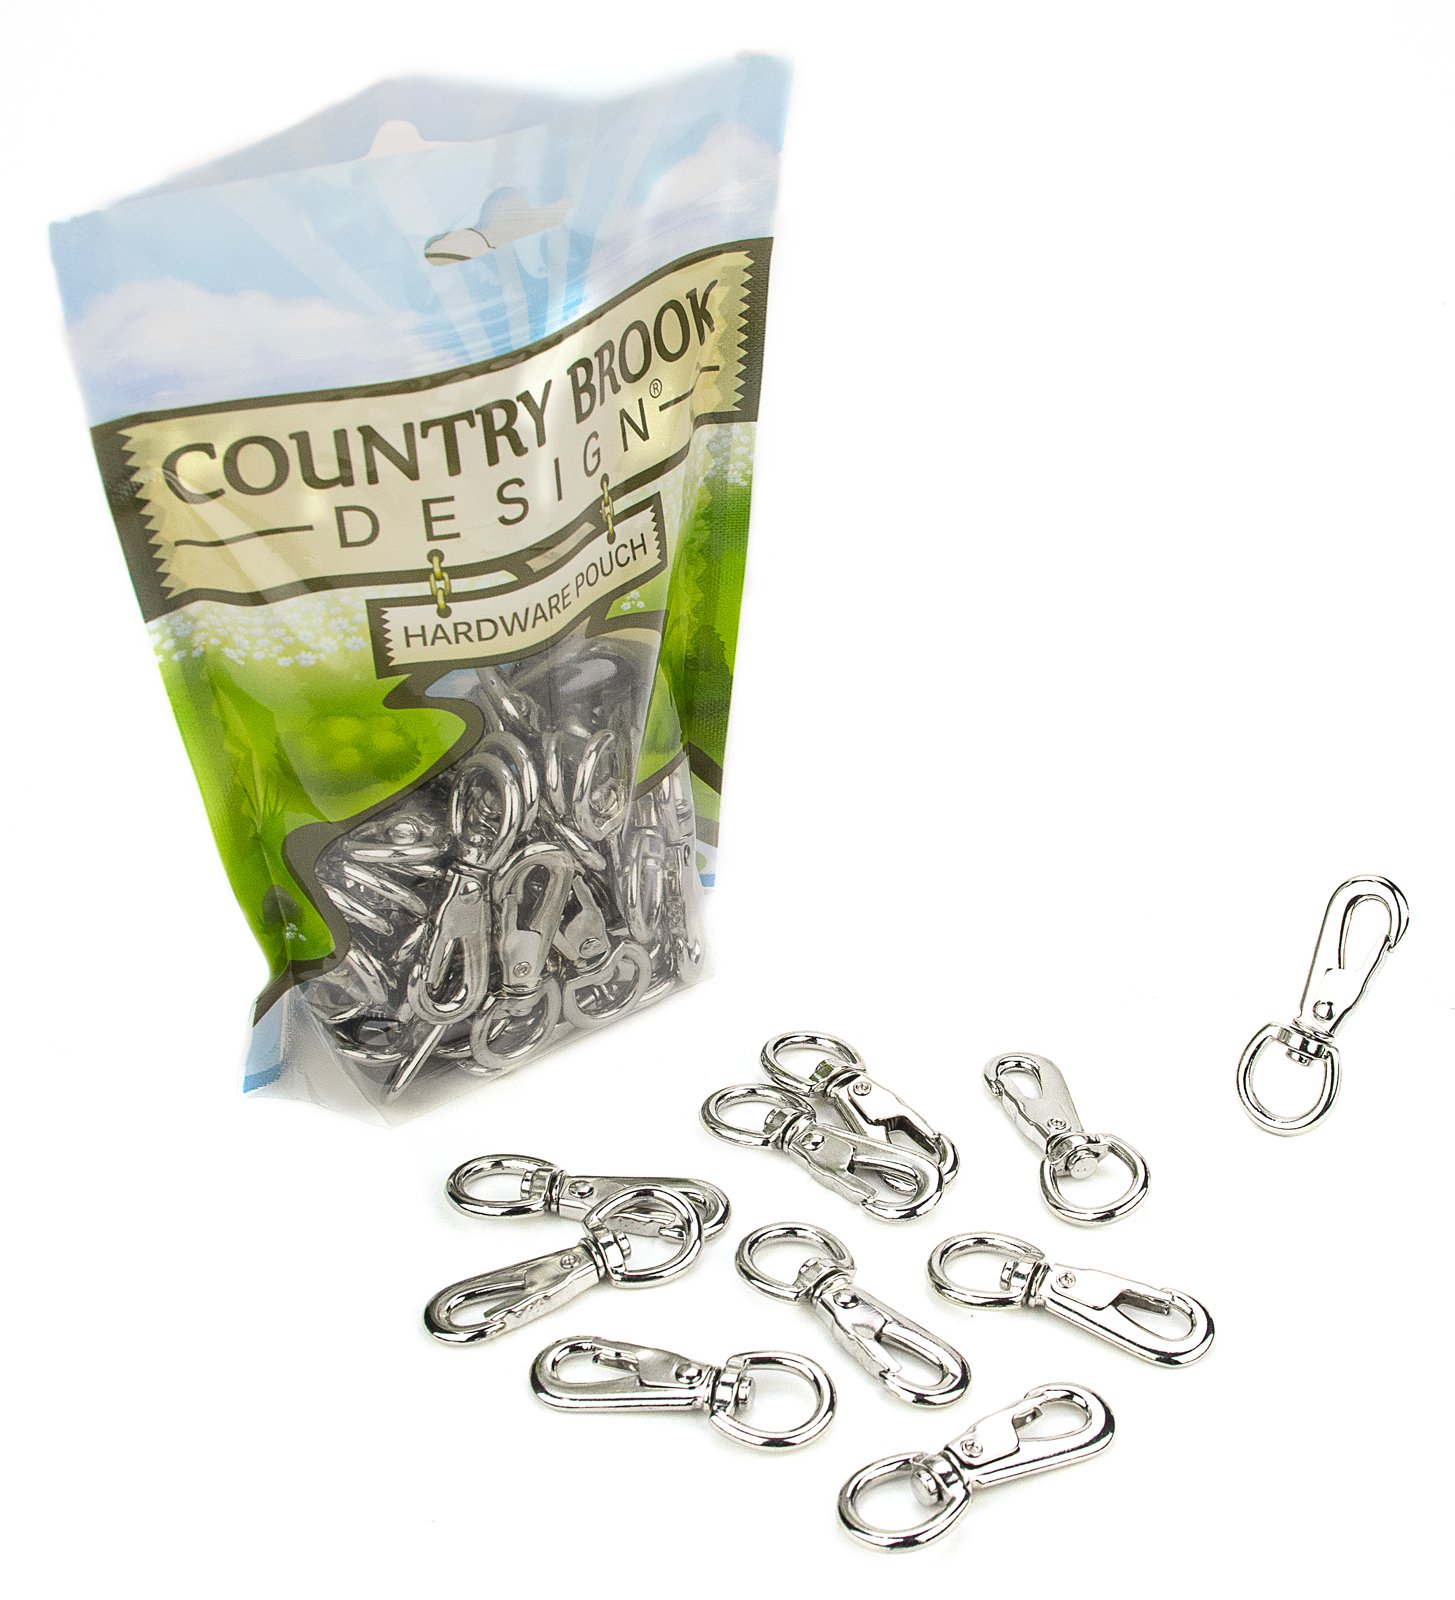 50 - Country Brook Design - 2 Inch Swivel Lobster Snap Hooks by Country Brook Design